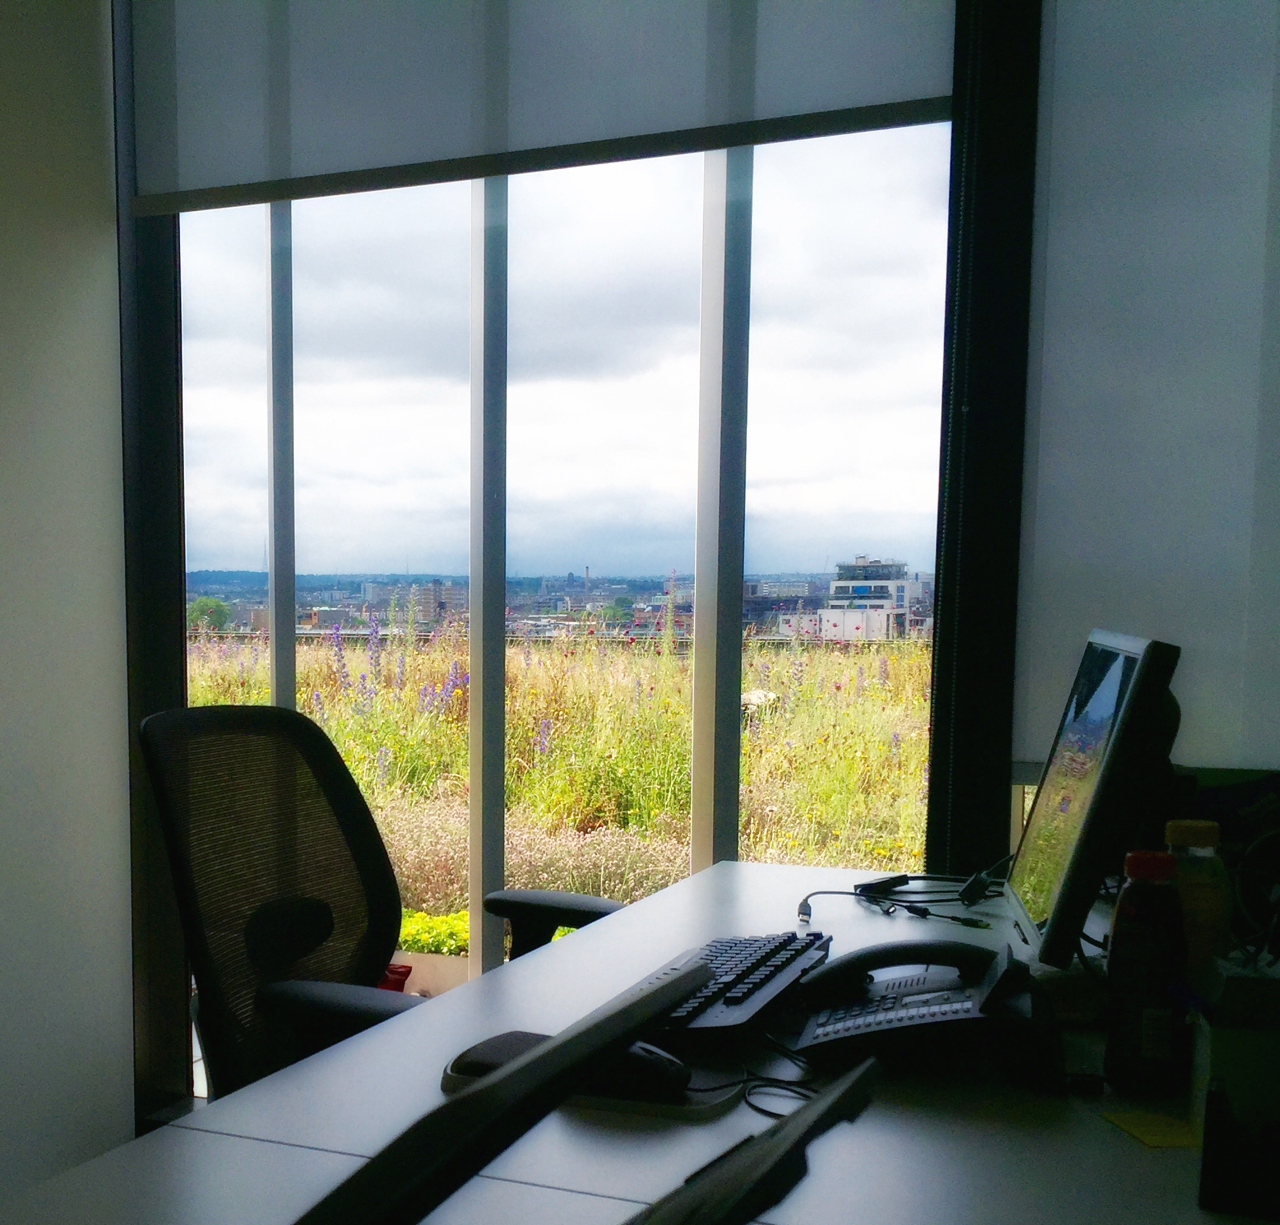 plants at work - viewing a green roof